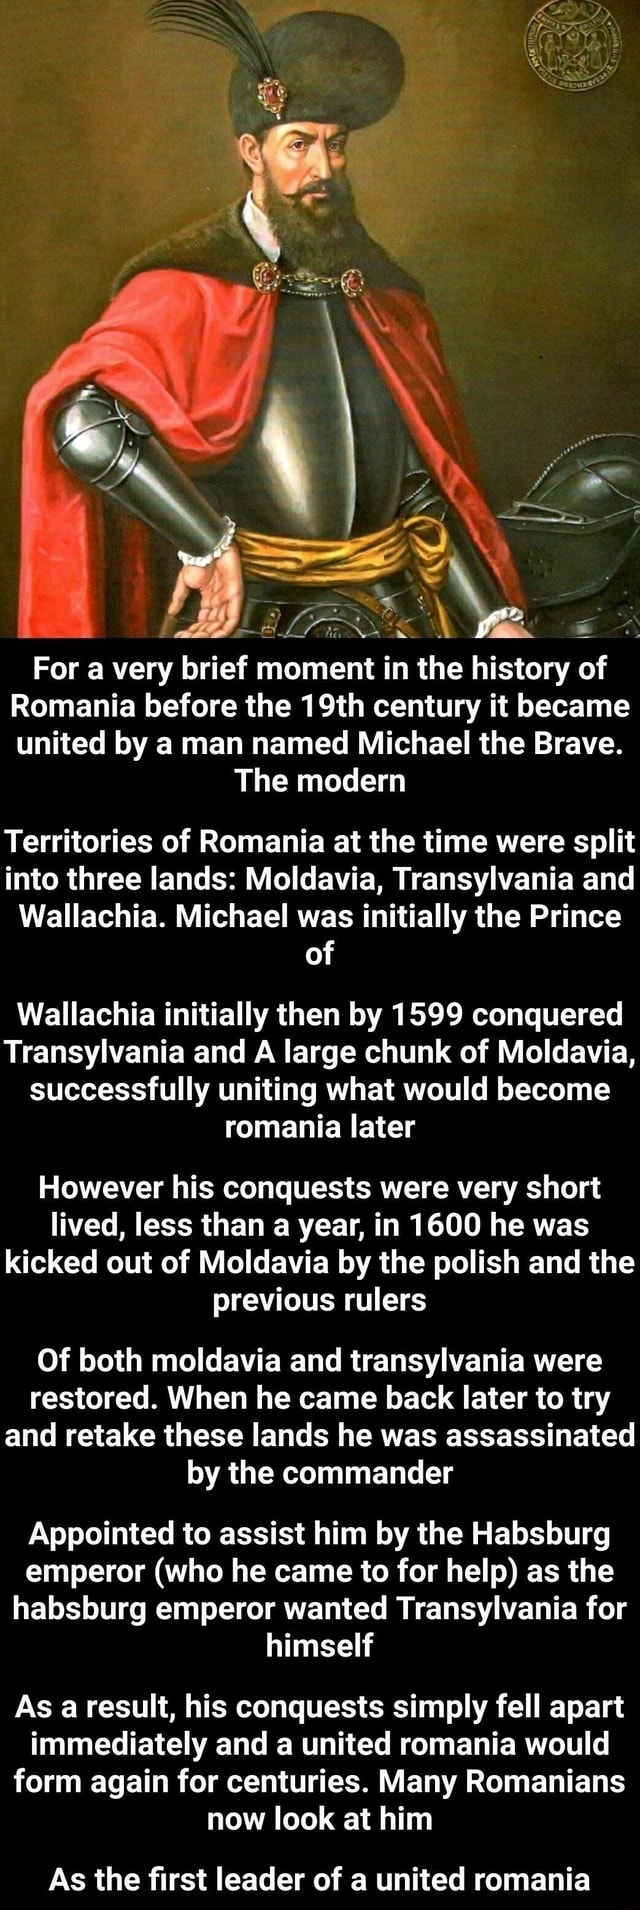 New NS For a very brief moment in the history of Romania before the 19th century it became united by a man named Michael the Brave. The modern Territories of Romania at the time were split into three lands Moldavia, Transylvania and Wallachia. Michael was initially the Prince of Wa lachia initially then by 1599 conquered Transylvania and A large chunk of Moldavia, successfully uniting what would become romania later However his conquests were very short lived, less than a year, in 1600 he was kicked out of Moldavia by the polish and the previous rulers Of both moldavia and transylvania were restored. When he came back later to try and retake these lands he was assassinated by the commander Appointed to assist him by the Habsburg emperor who he came to for help as the habsburg emperor wante